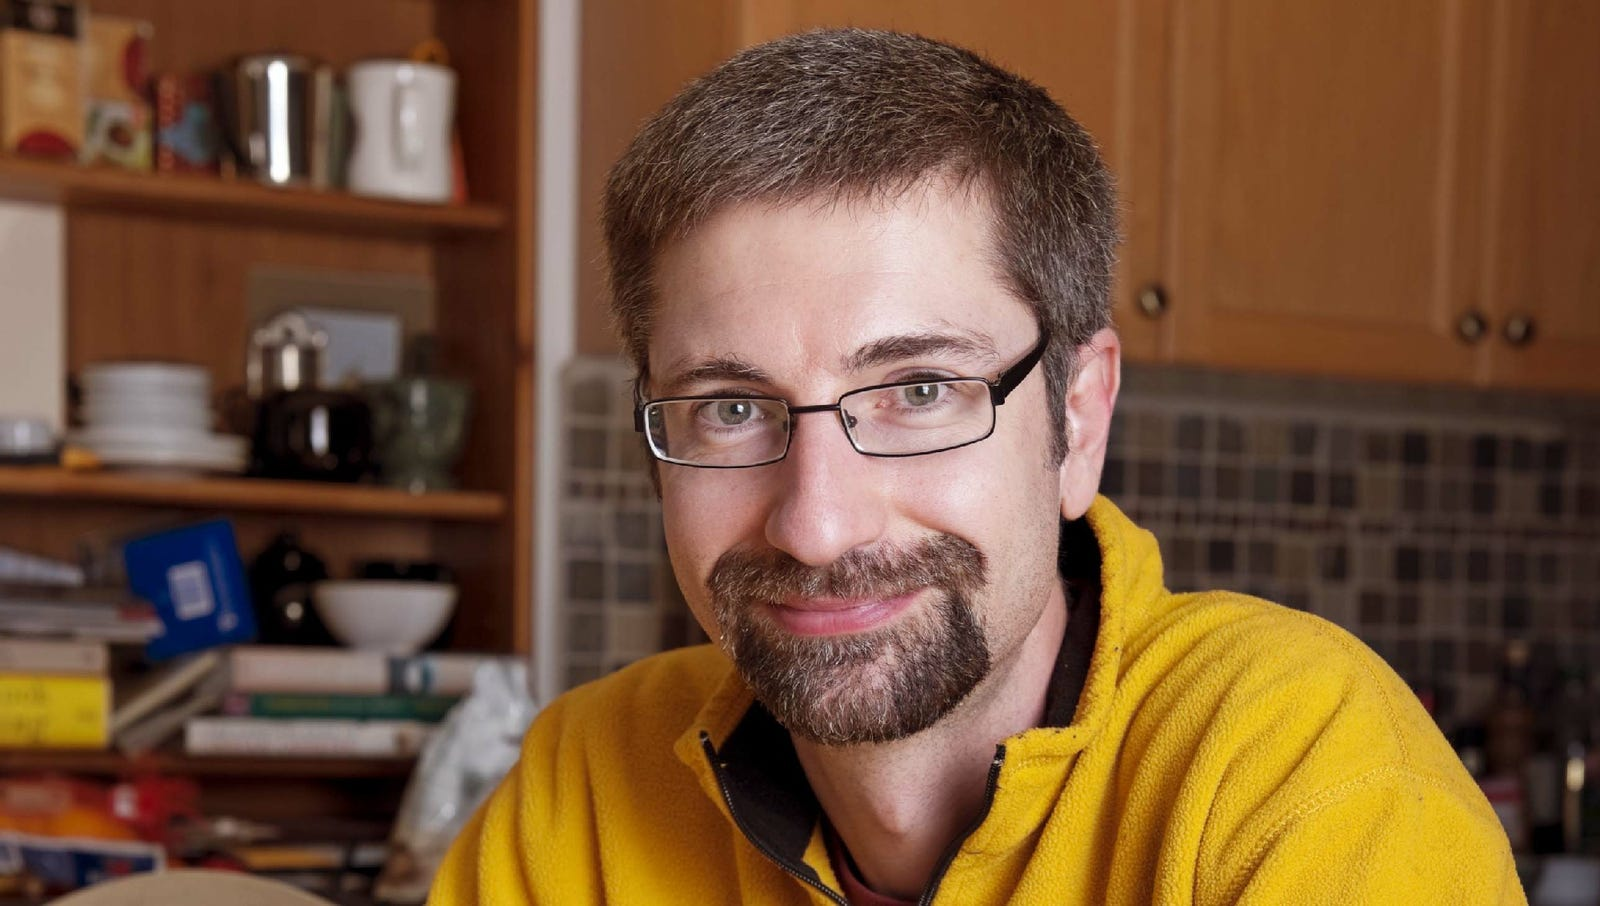 Man Has No Idea What To Do With Good Mood